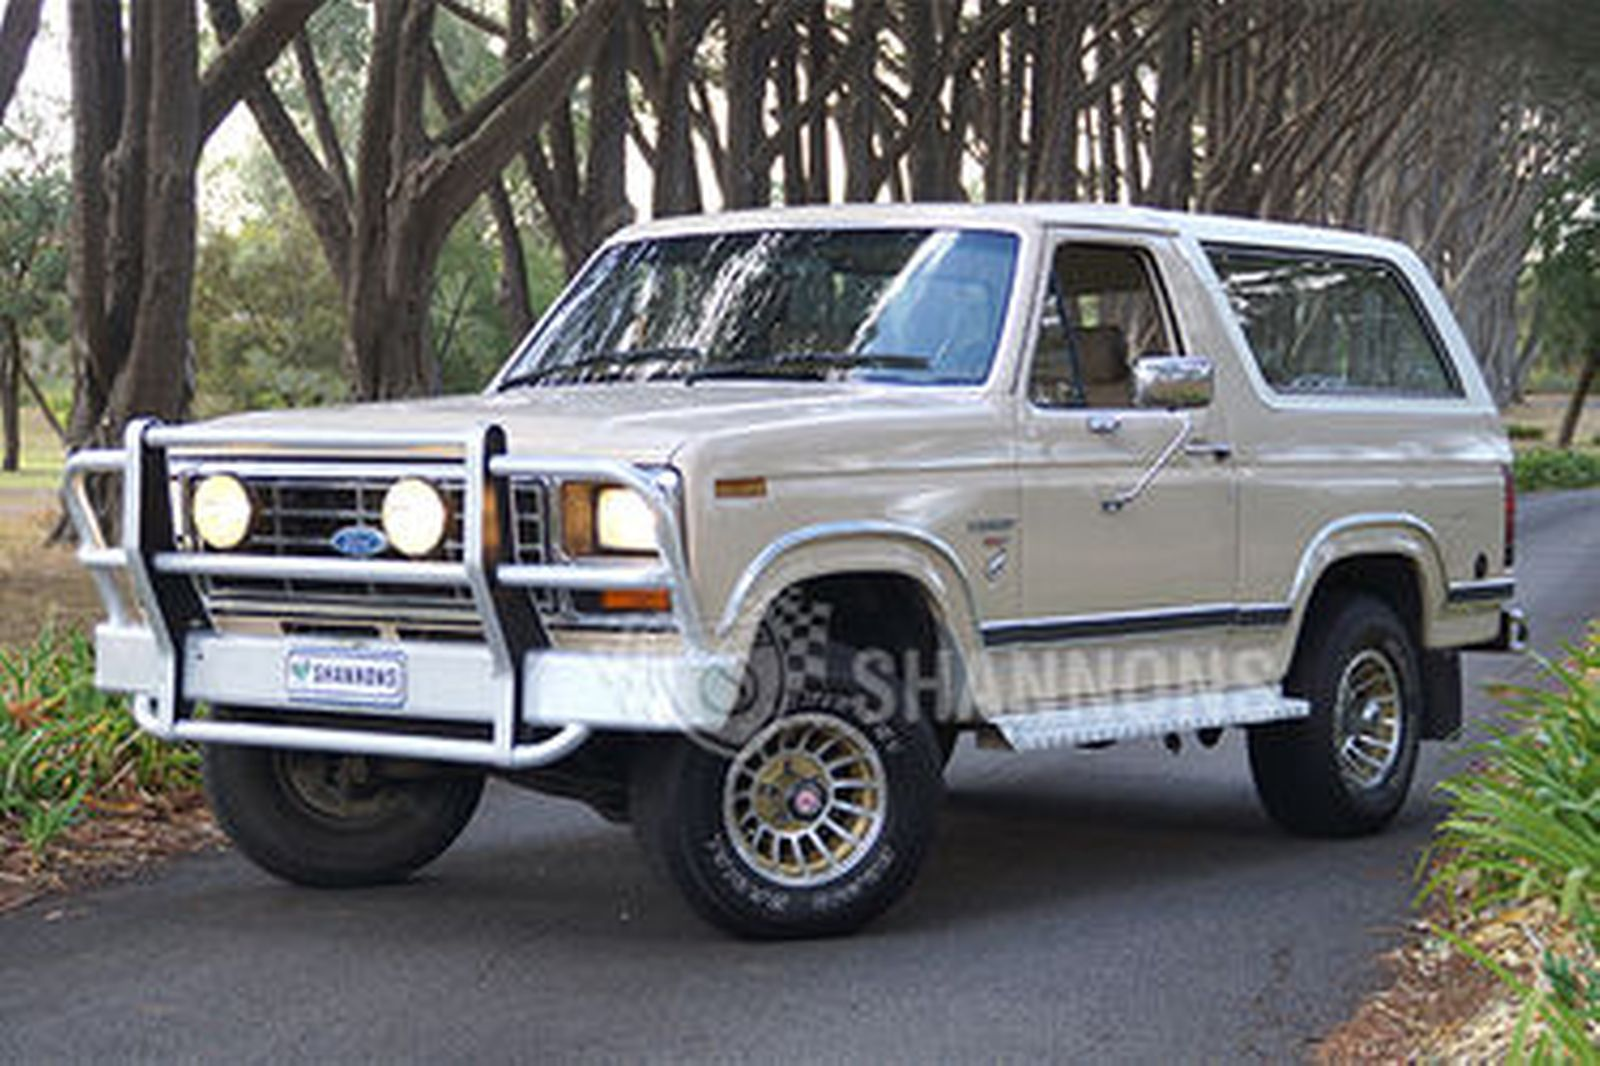 1980 Ford Bronco Fuel Line Sold Xlt Station Wagon Auctions Lot 27 Shannons